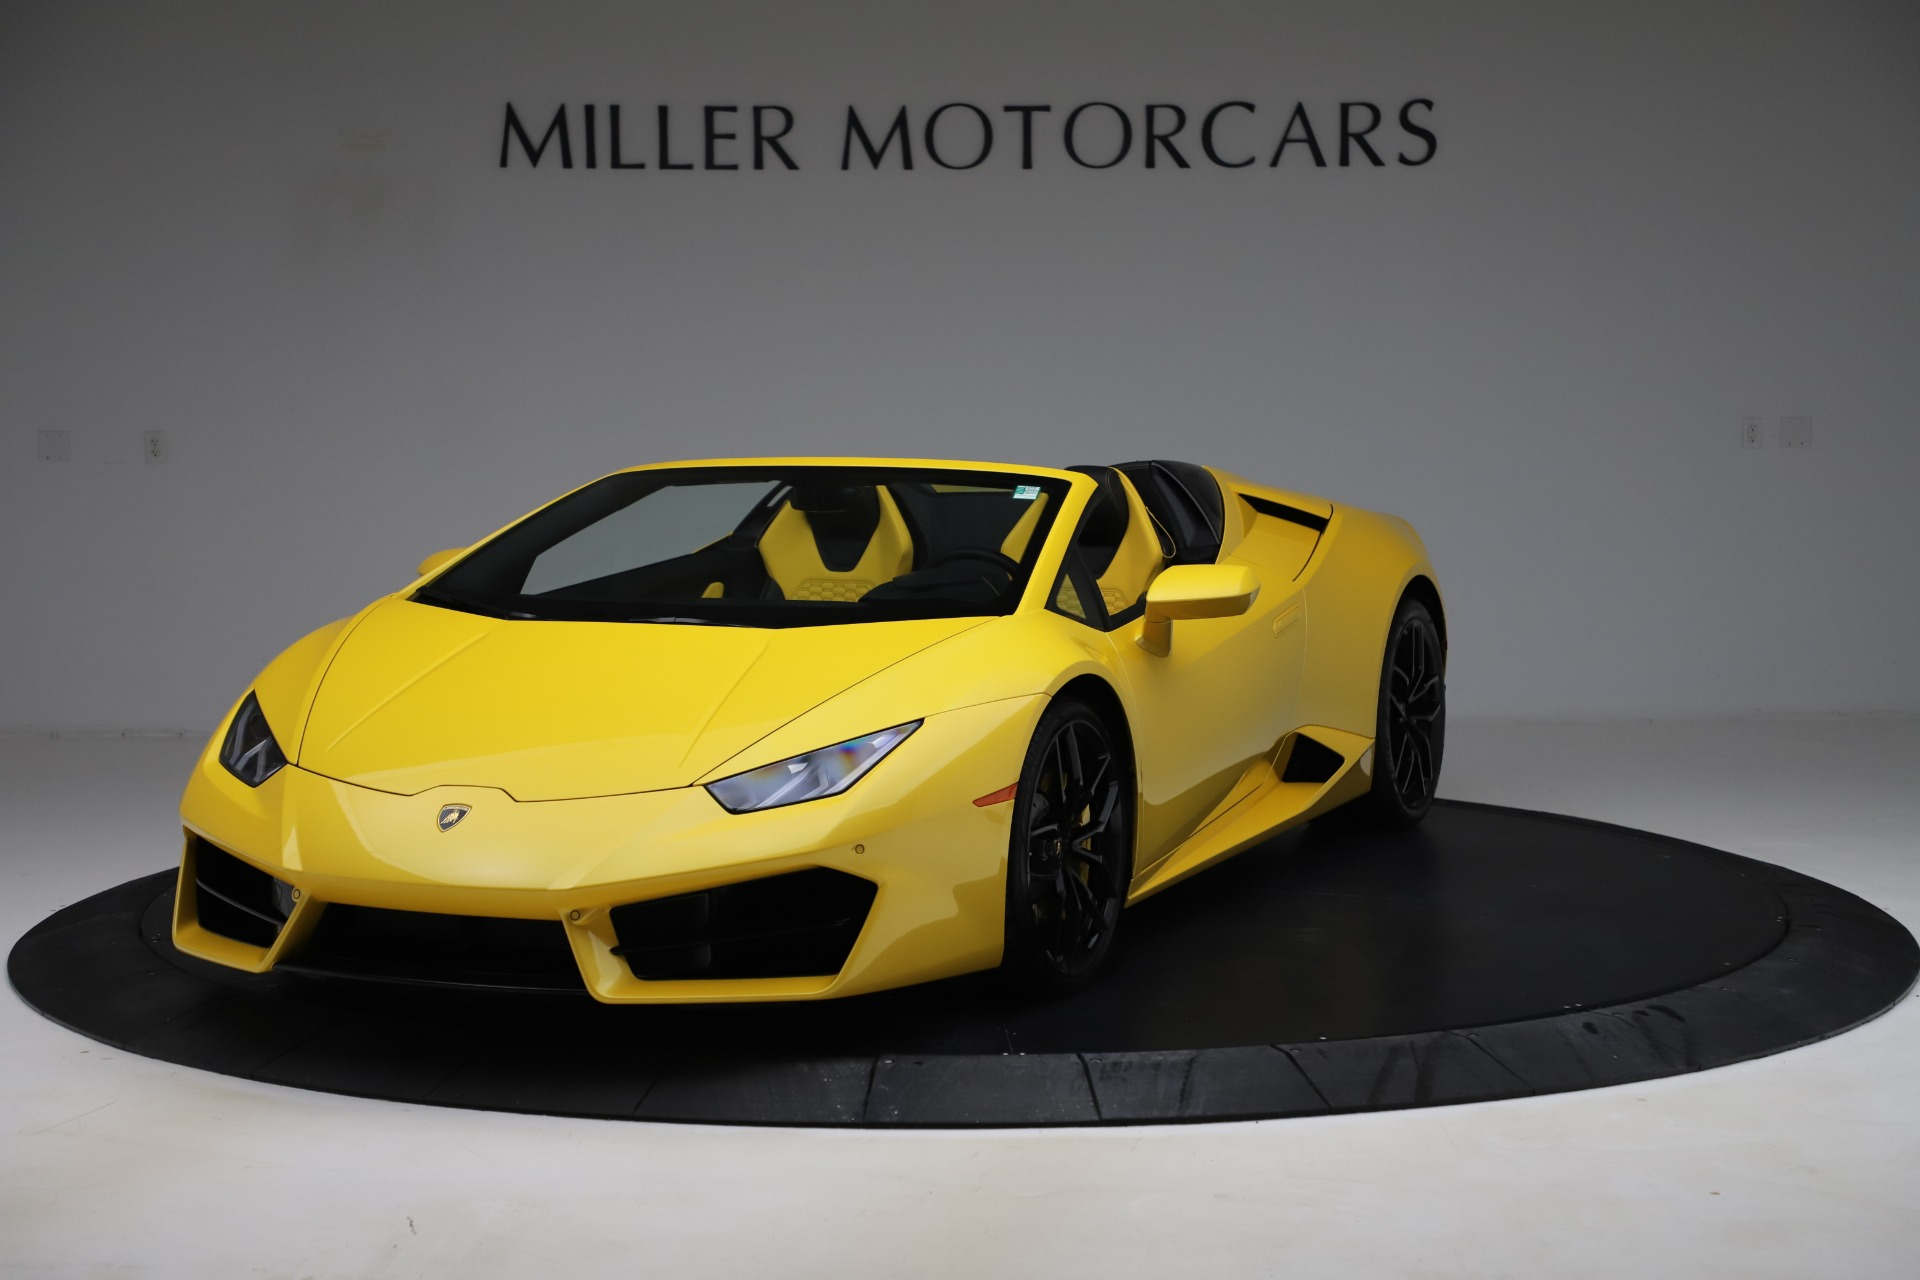 Used 2018 Lamborghini Huracan LP 580-2 Spyder for sale $203,900 at Bentley Greenwich in Greenwich CT 06830 1